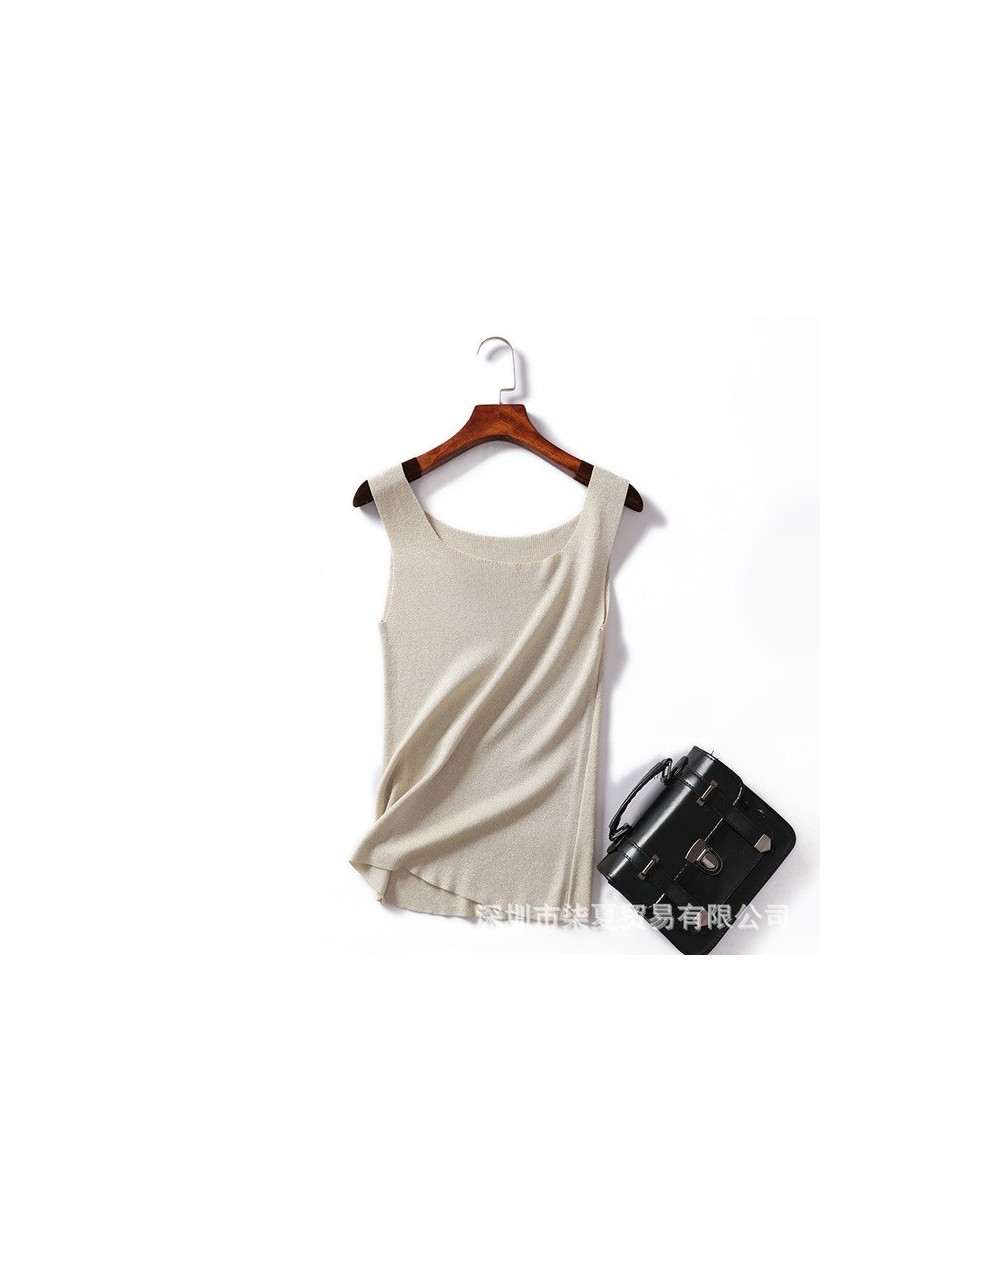 New tank tops Knitted T shirt 2019 summer solid Top Vest crop tops Camisole Women White multicolors Fitness Femme loose tops...